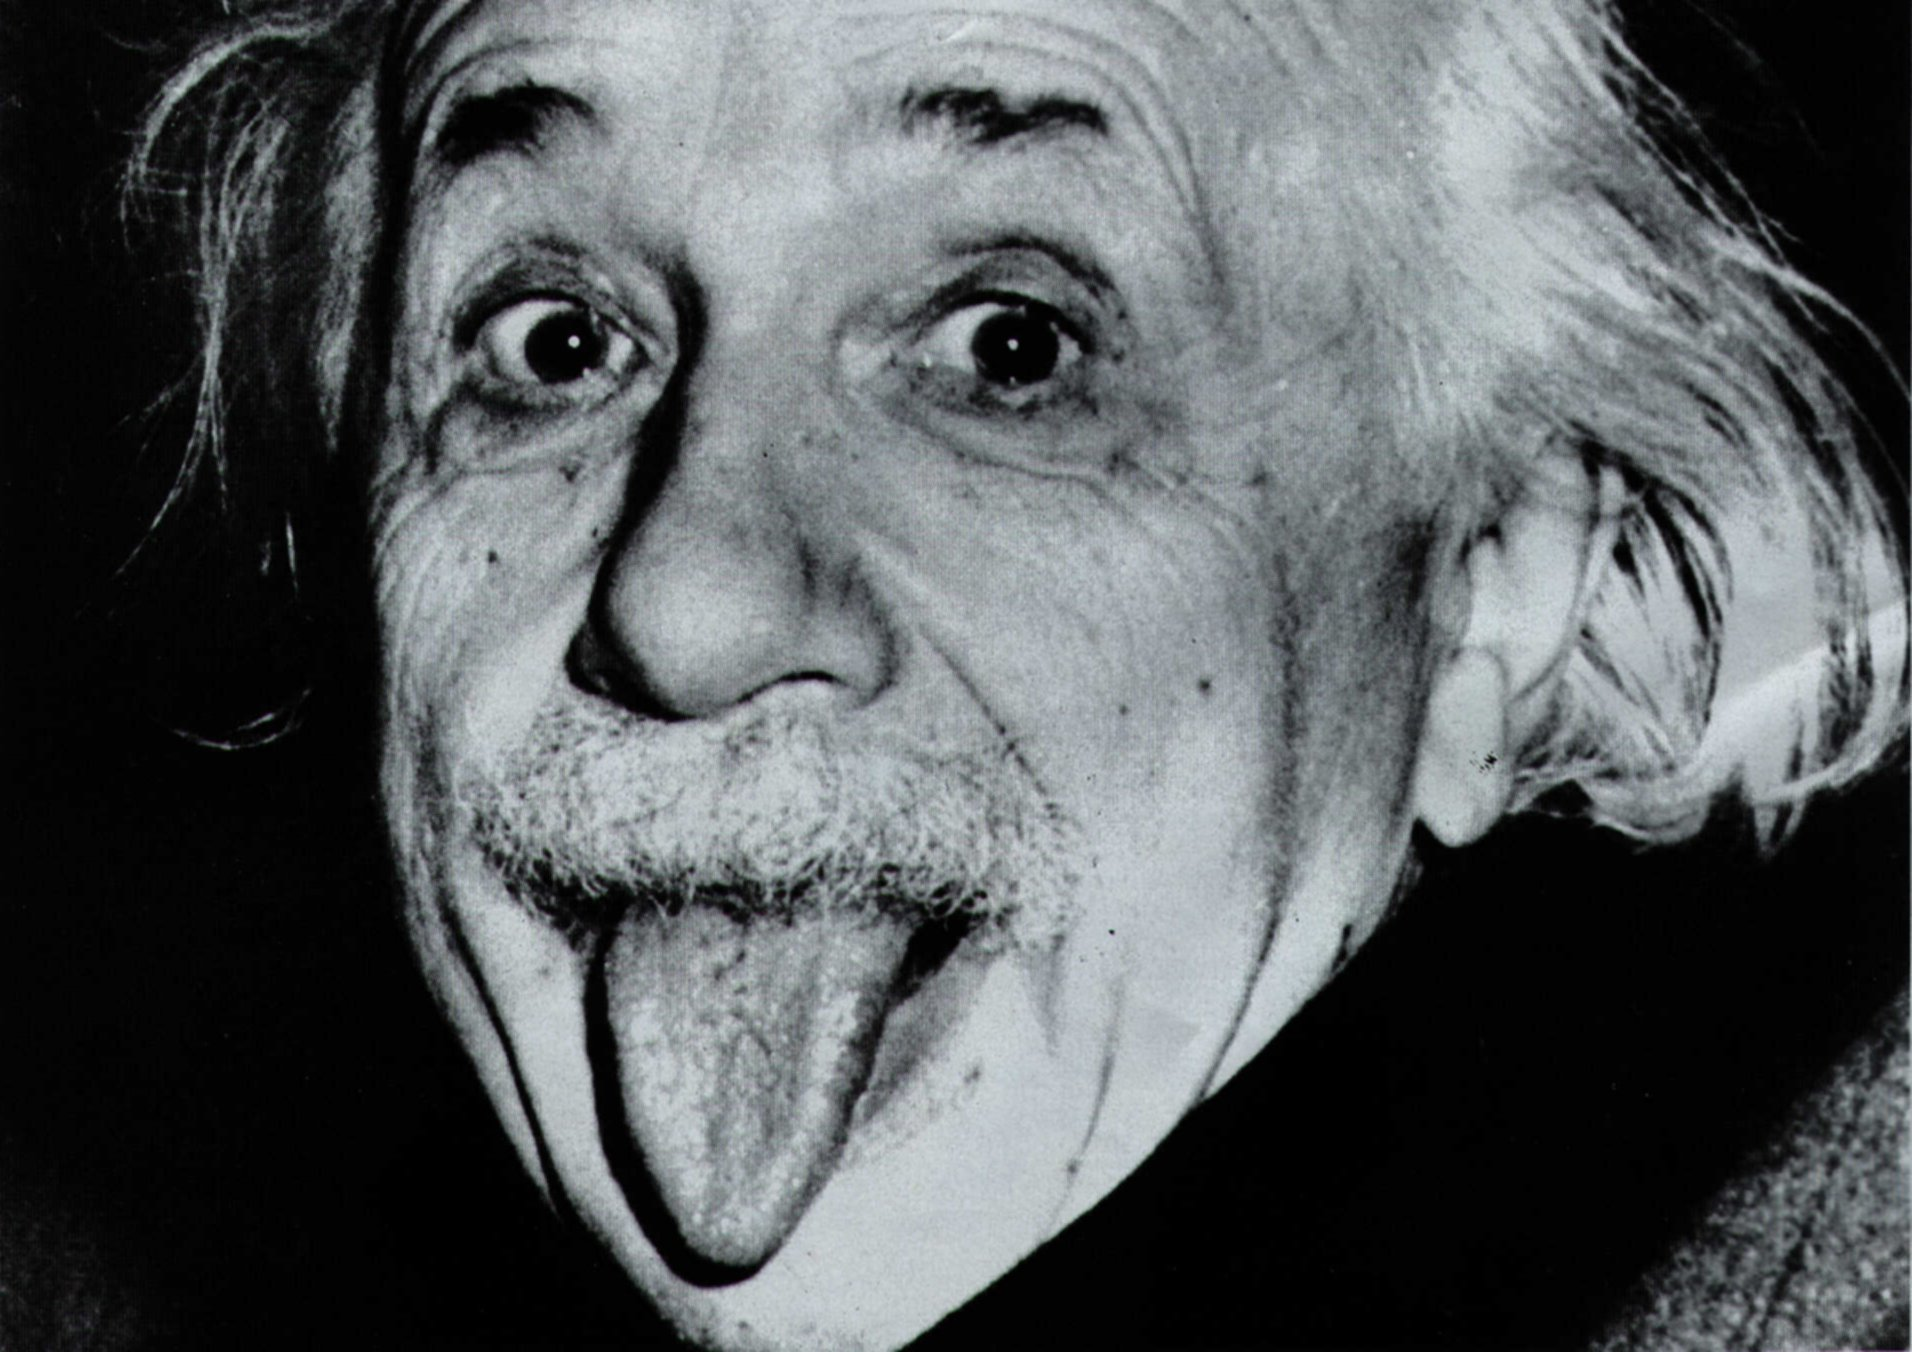 the interesting life of the genius albert einstein With new teaching duties, albert einstein (johnny flynn) finally begins to experience the academic life he long coveted as he develops his theory of general relativity enjoying his first taste of acclaim among the most renowned scientific minds of europe, einstein falters in his familial responsibilities.